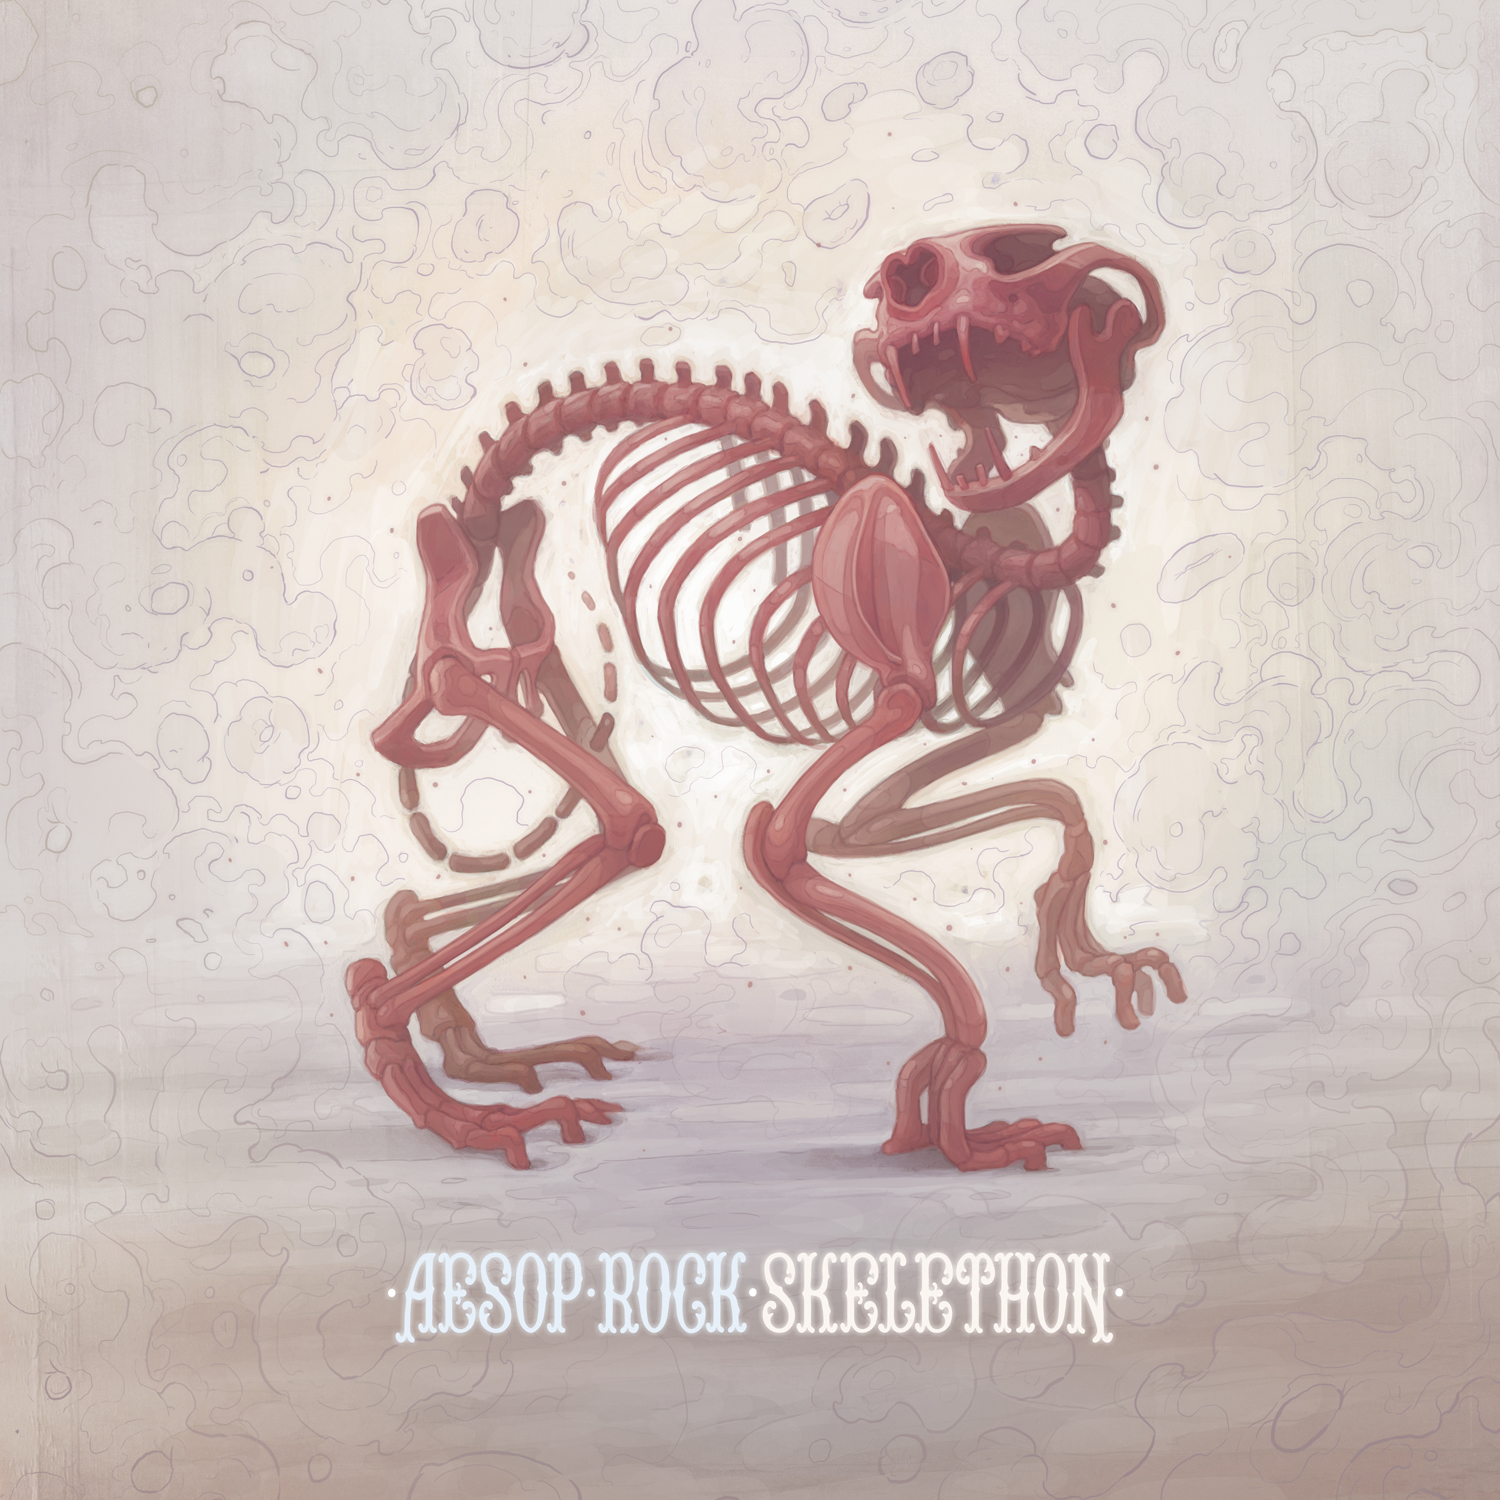 Aesop Rock Skelethon Album Download Has It Leaked